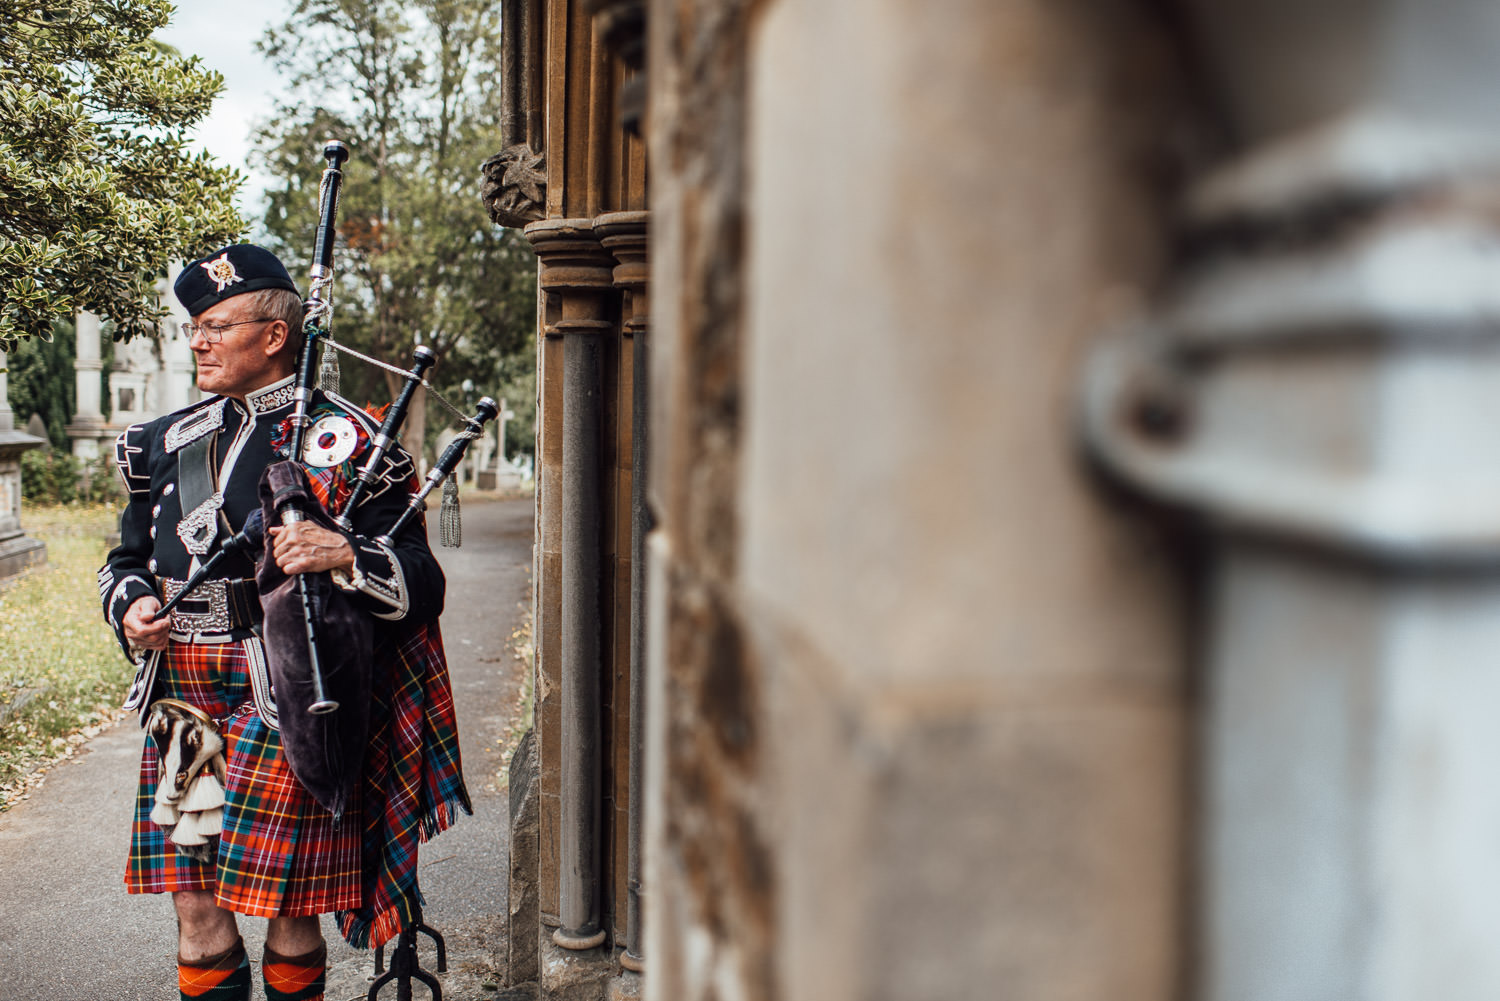 scottish wedding bagpipes in london wedding